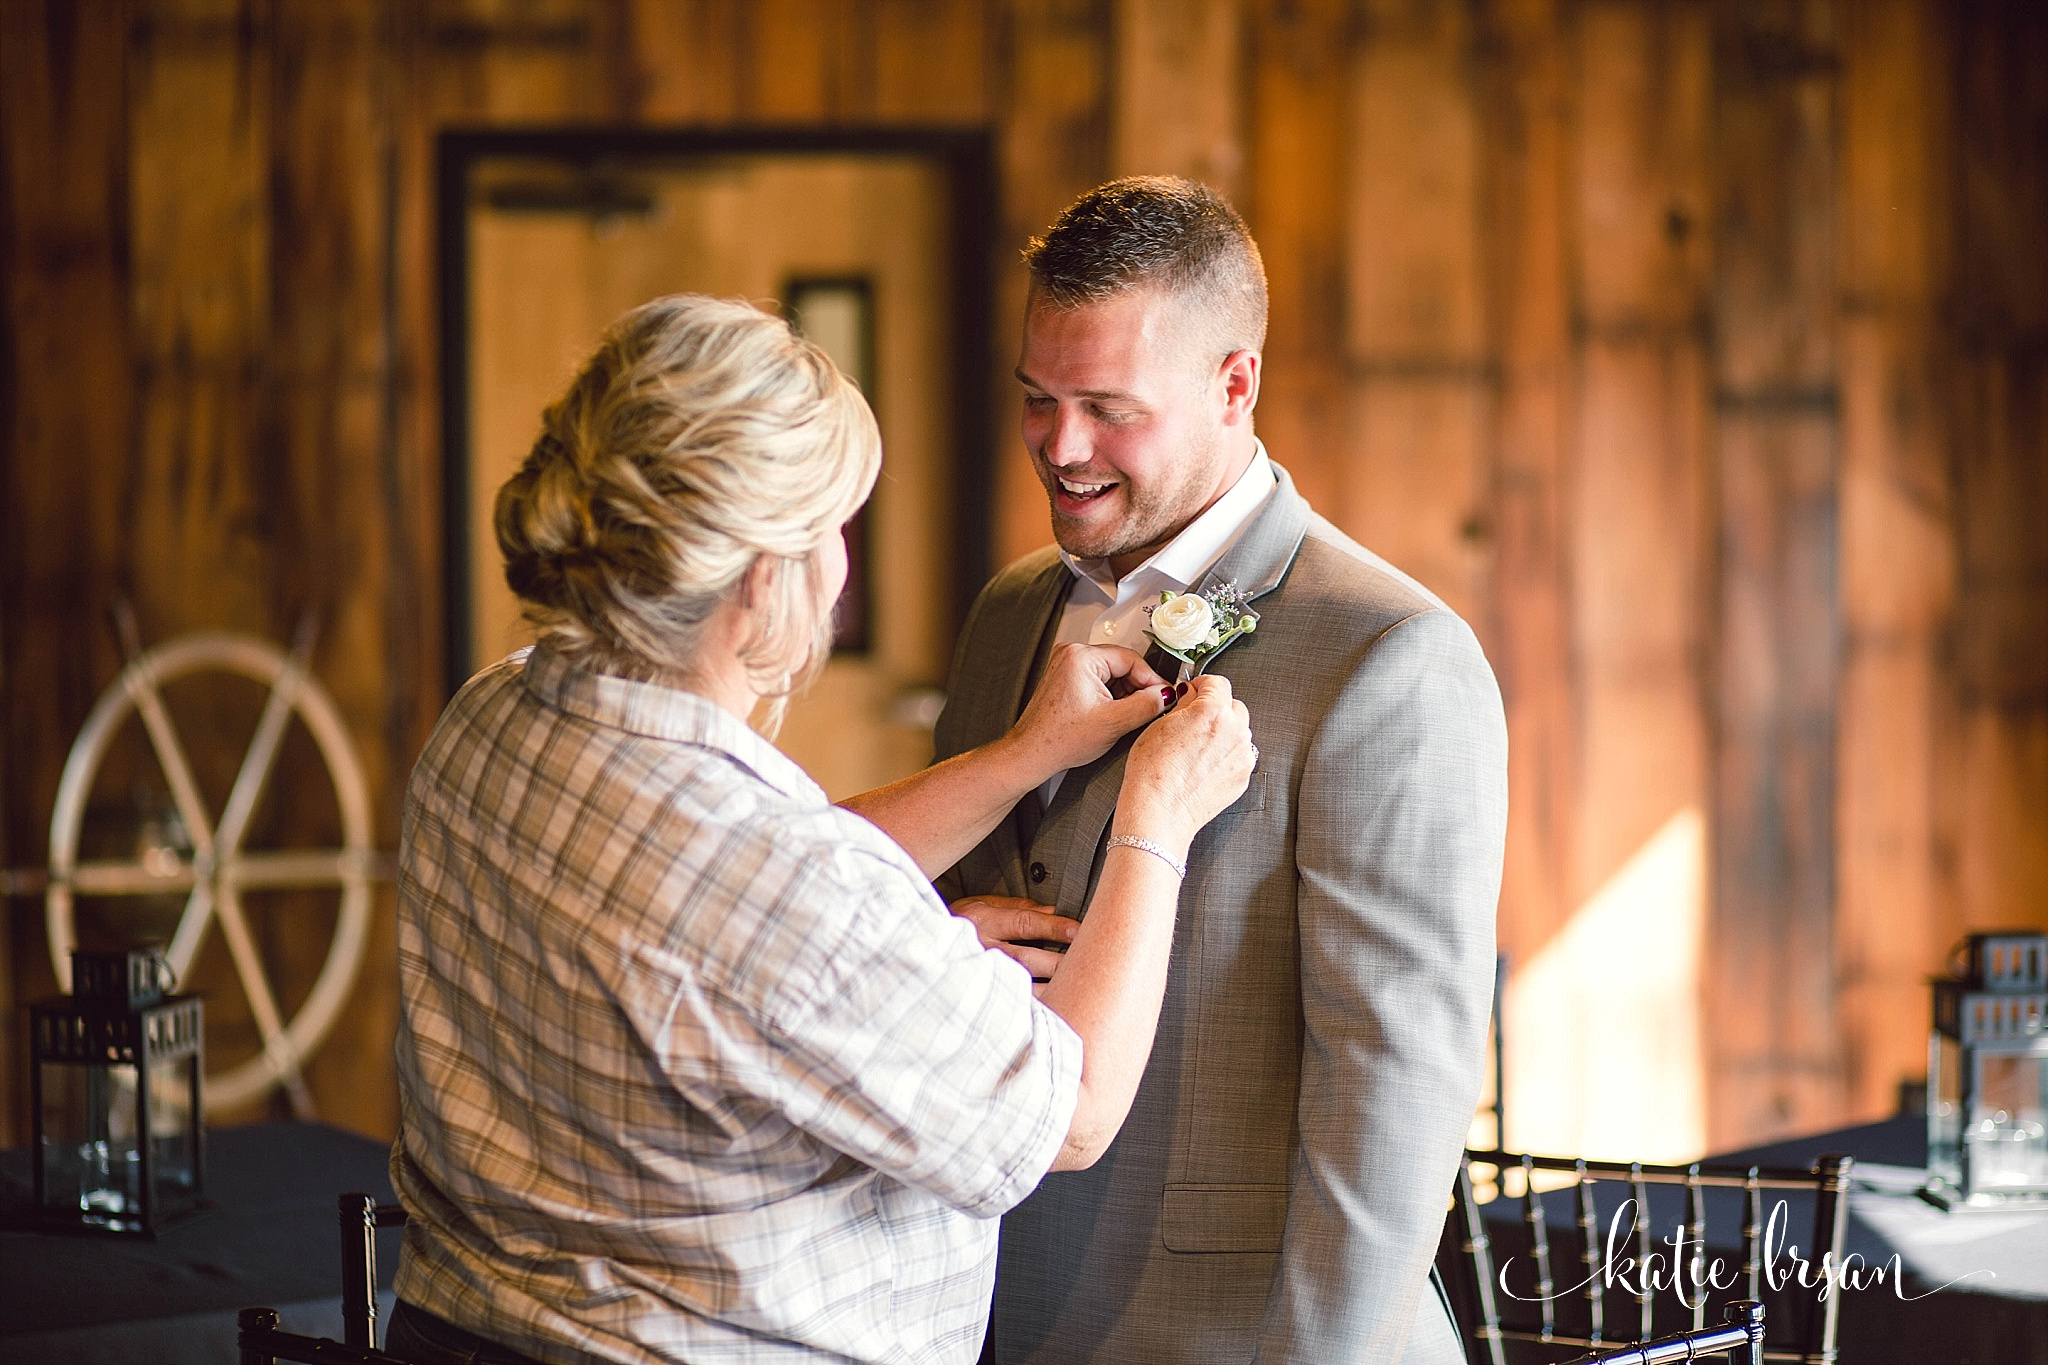 Fishermen'sInn_Wedding_Elburn_Chicago_Wedding_Photographer_1027.jpg